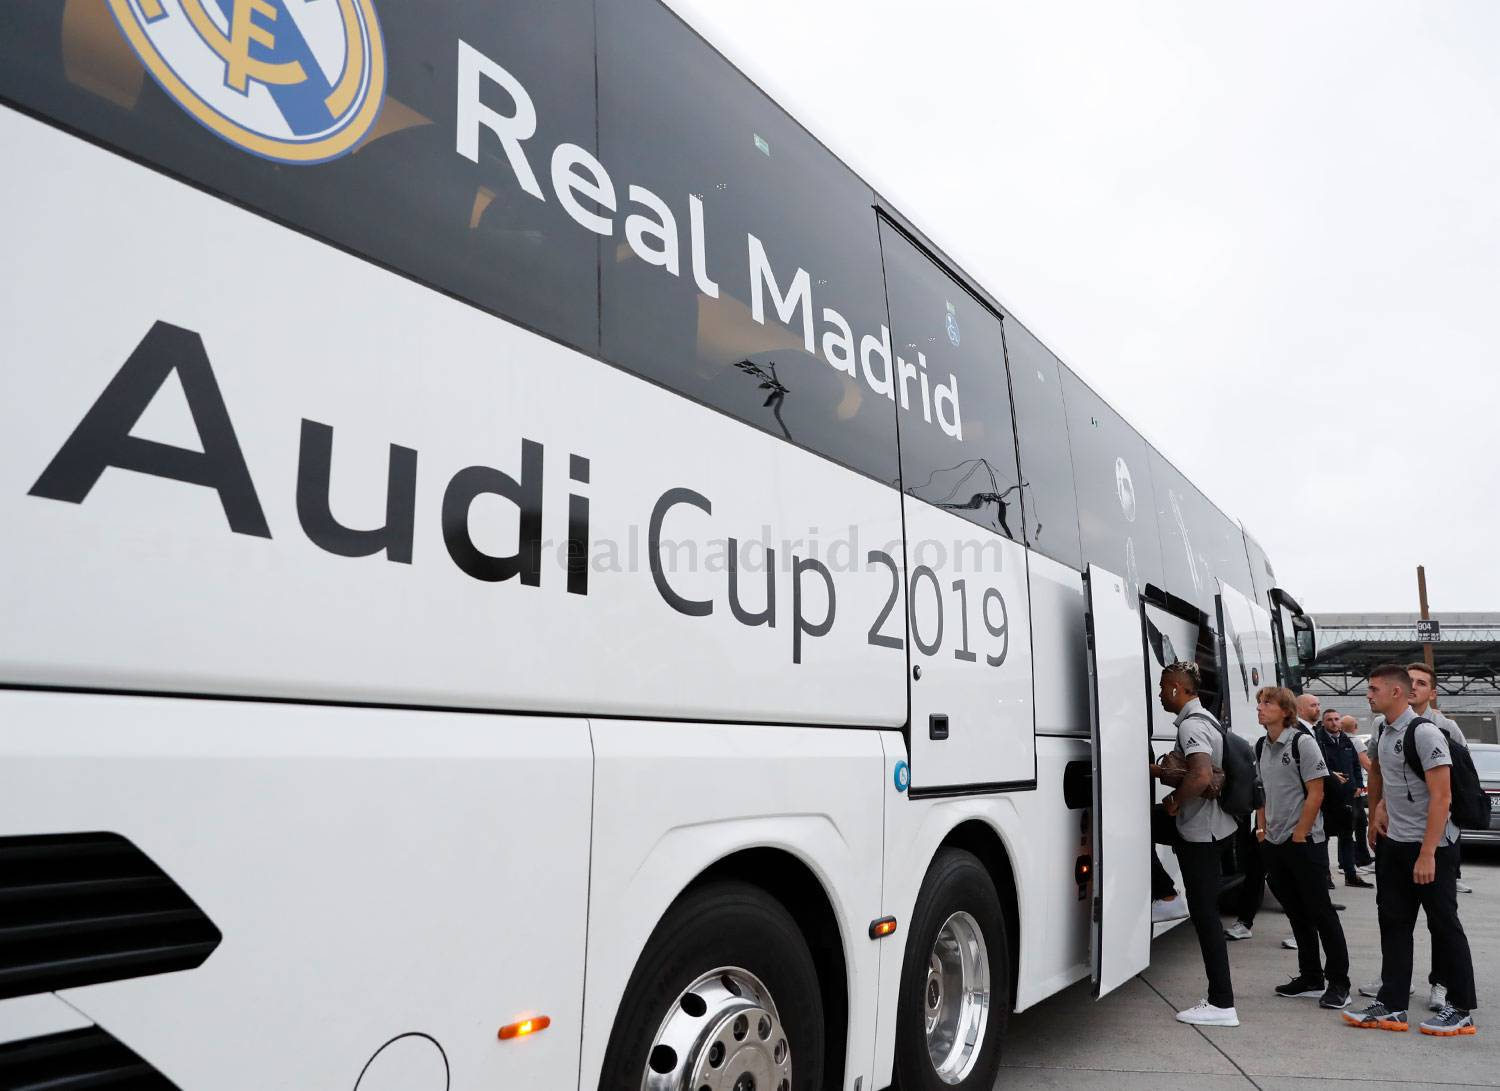 Real Madrid - Llegada del Real Madrid a Múnich - 29-07-2019